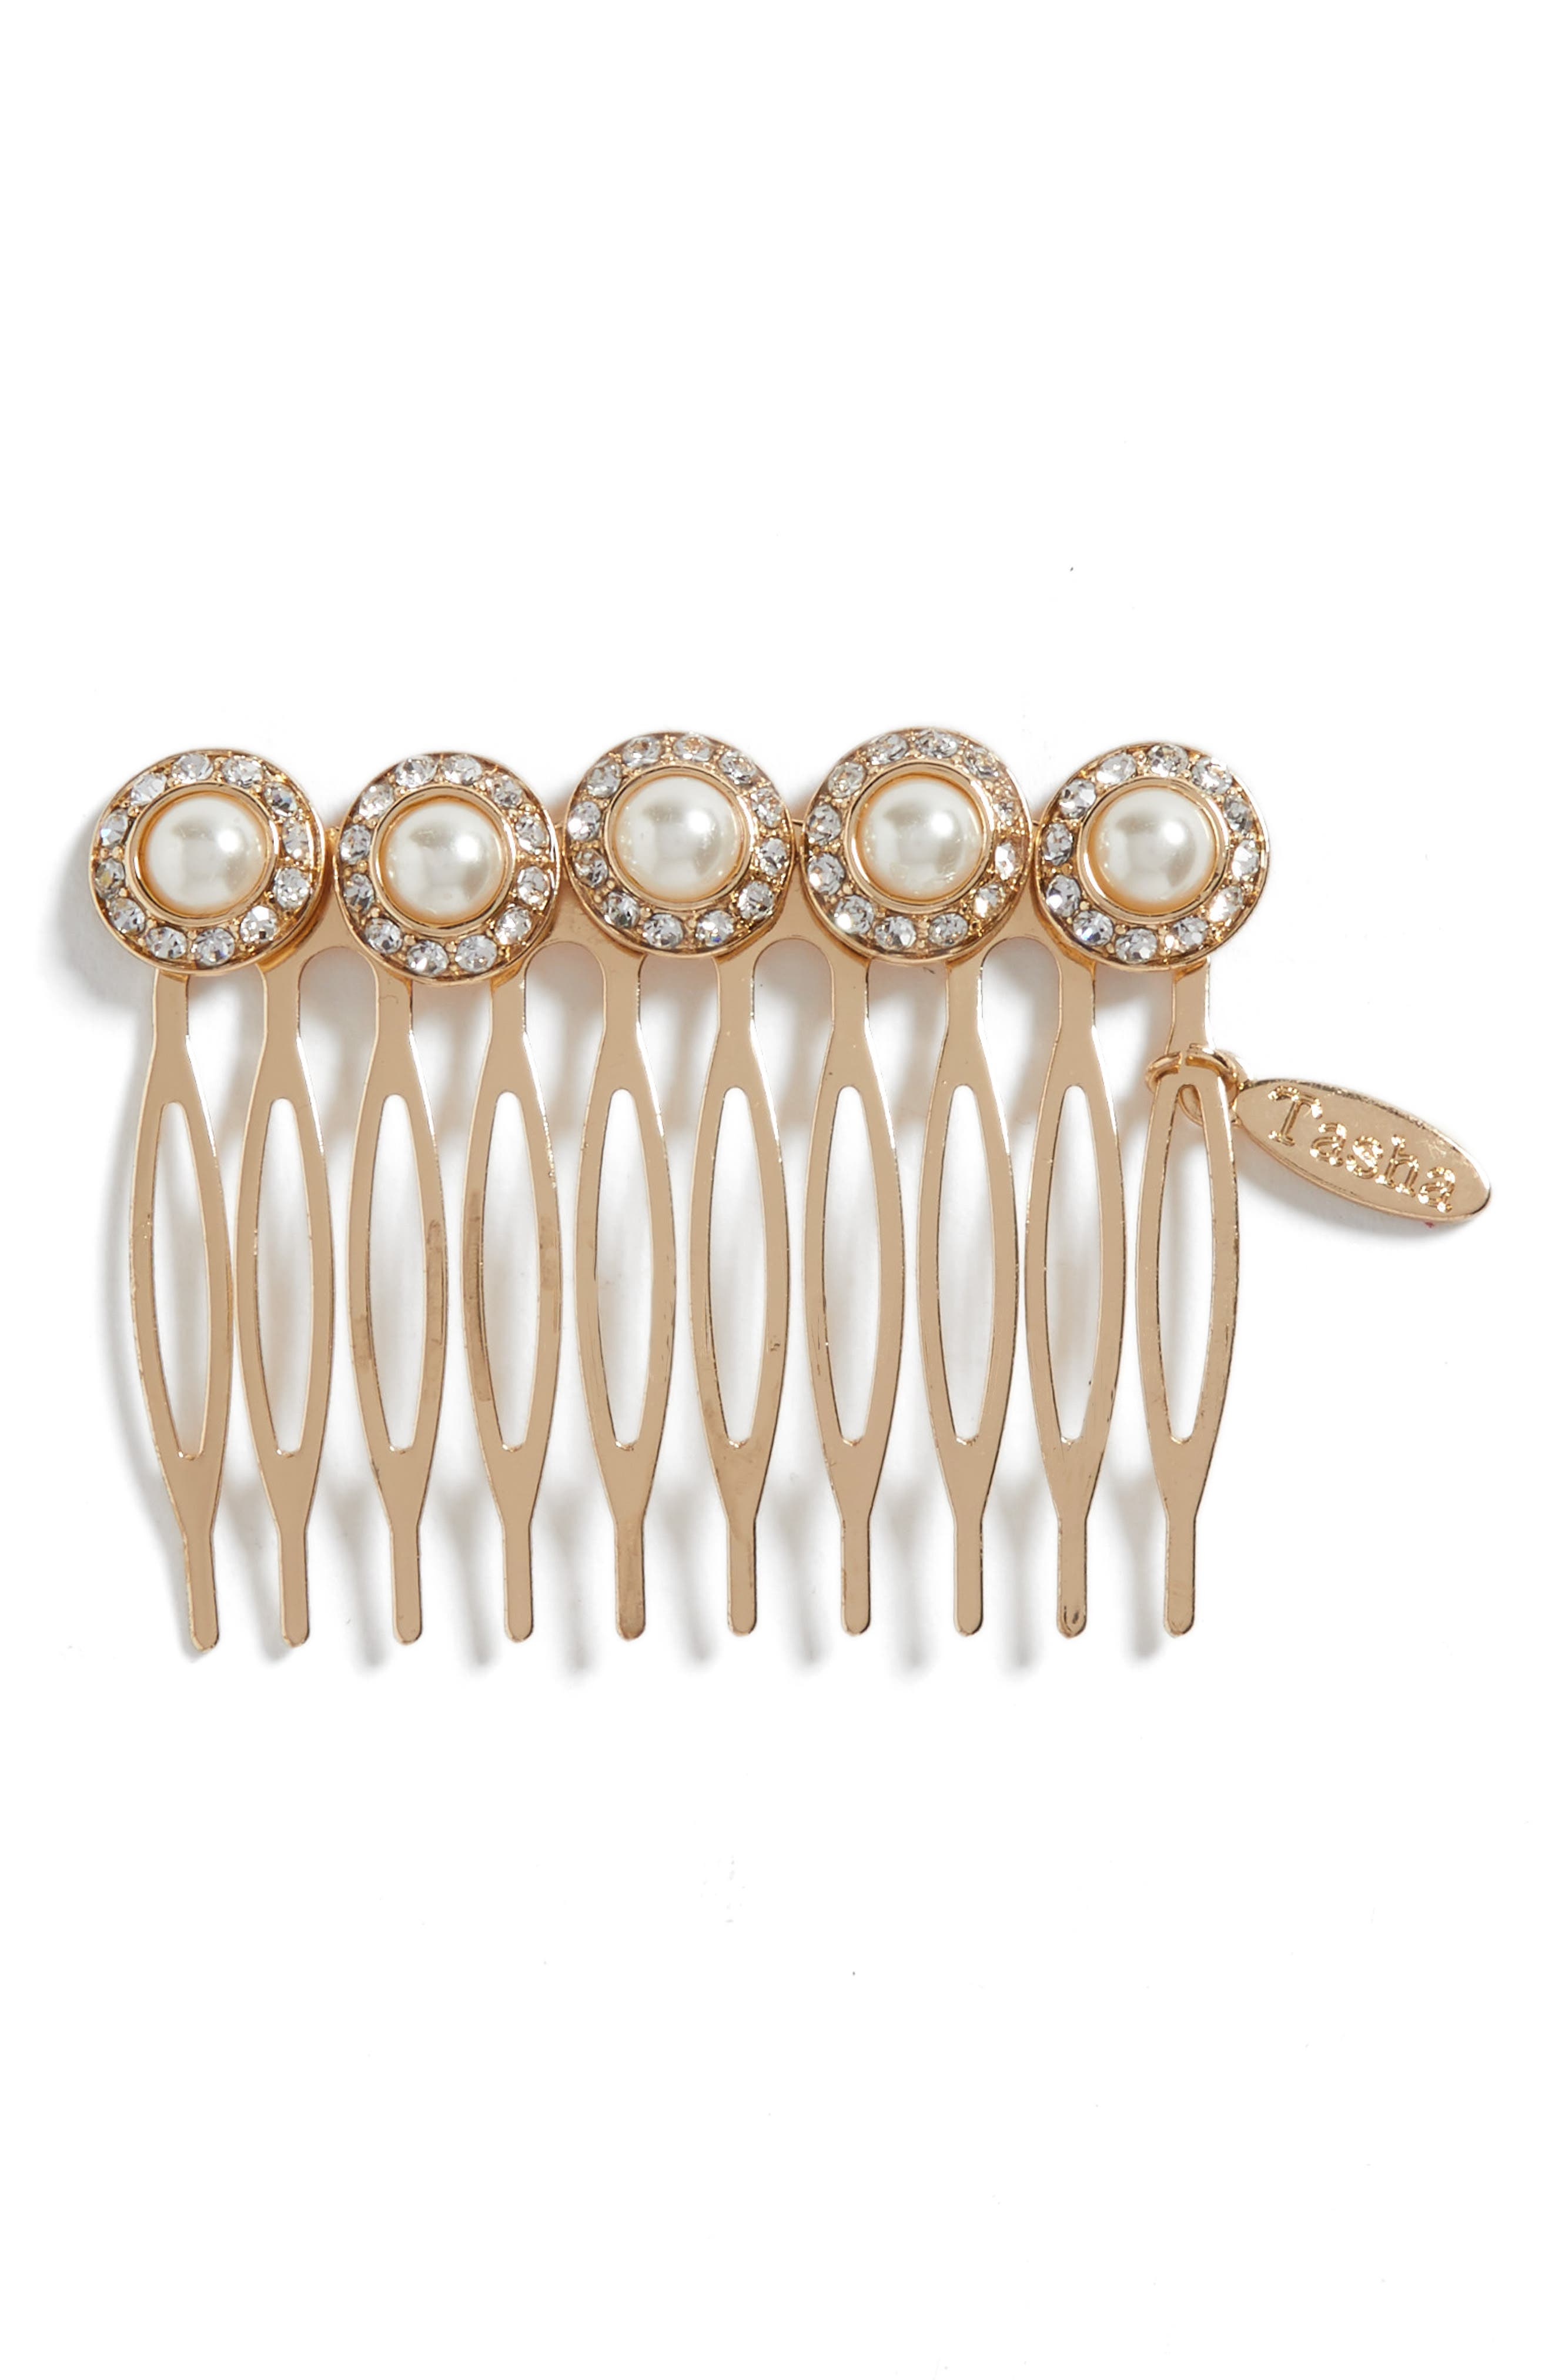 Imitation Pearl Embellished Hair Comb,                         Main,                         color, Gold